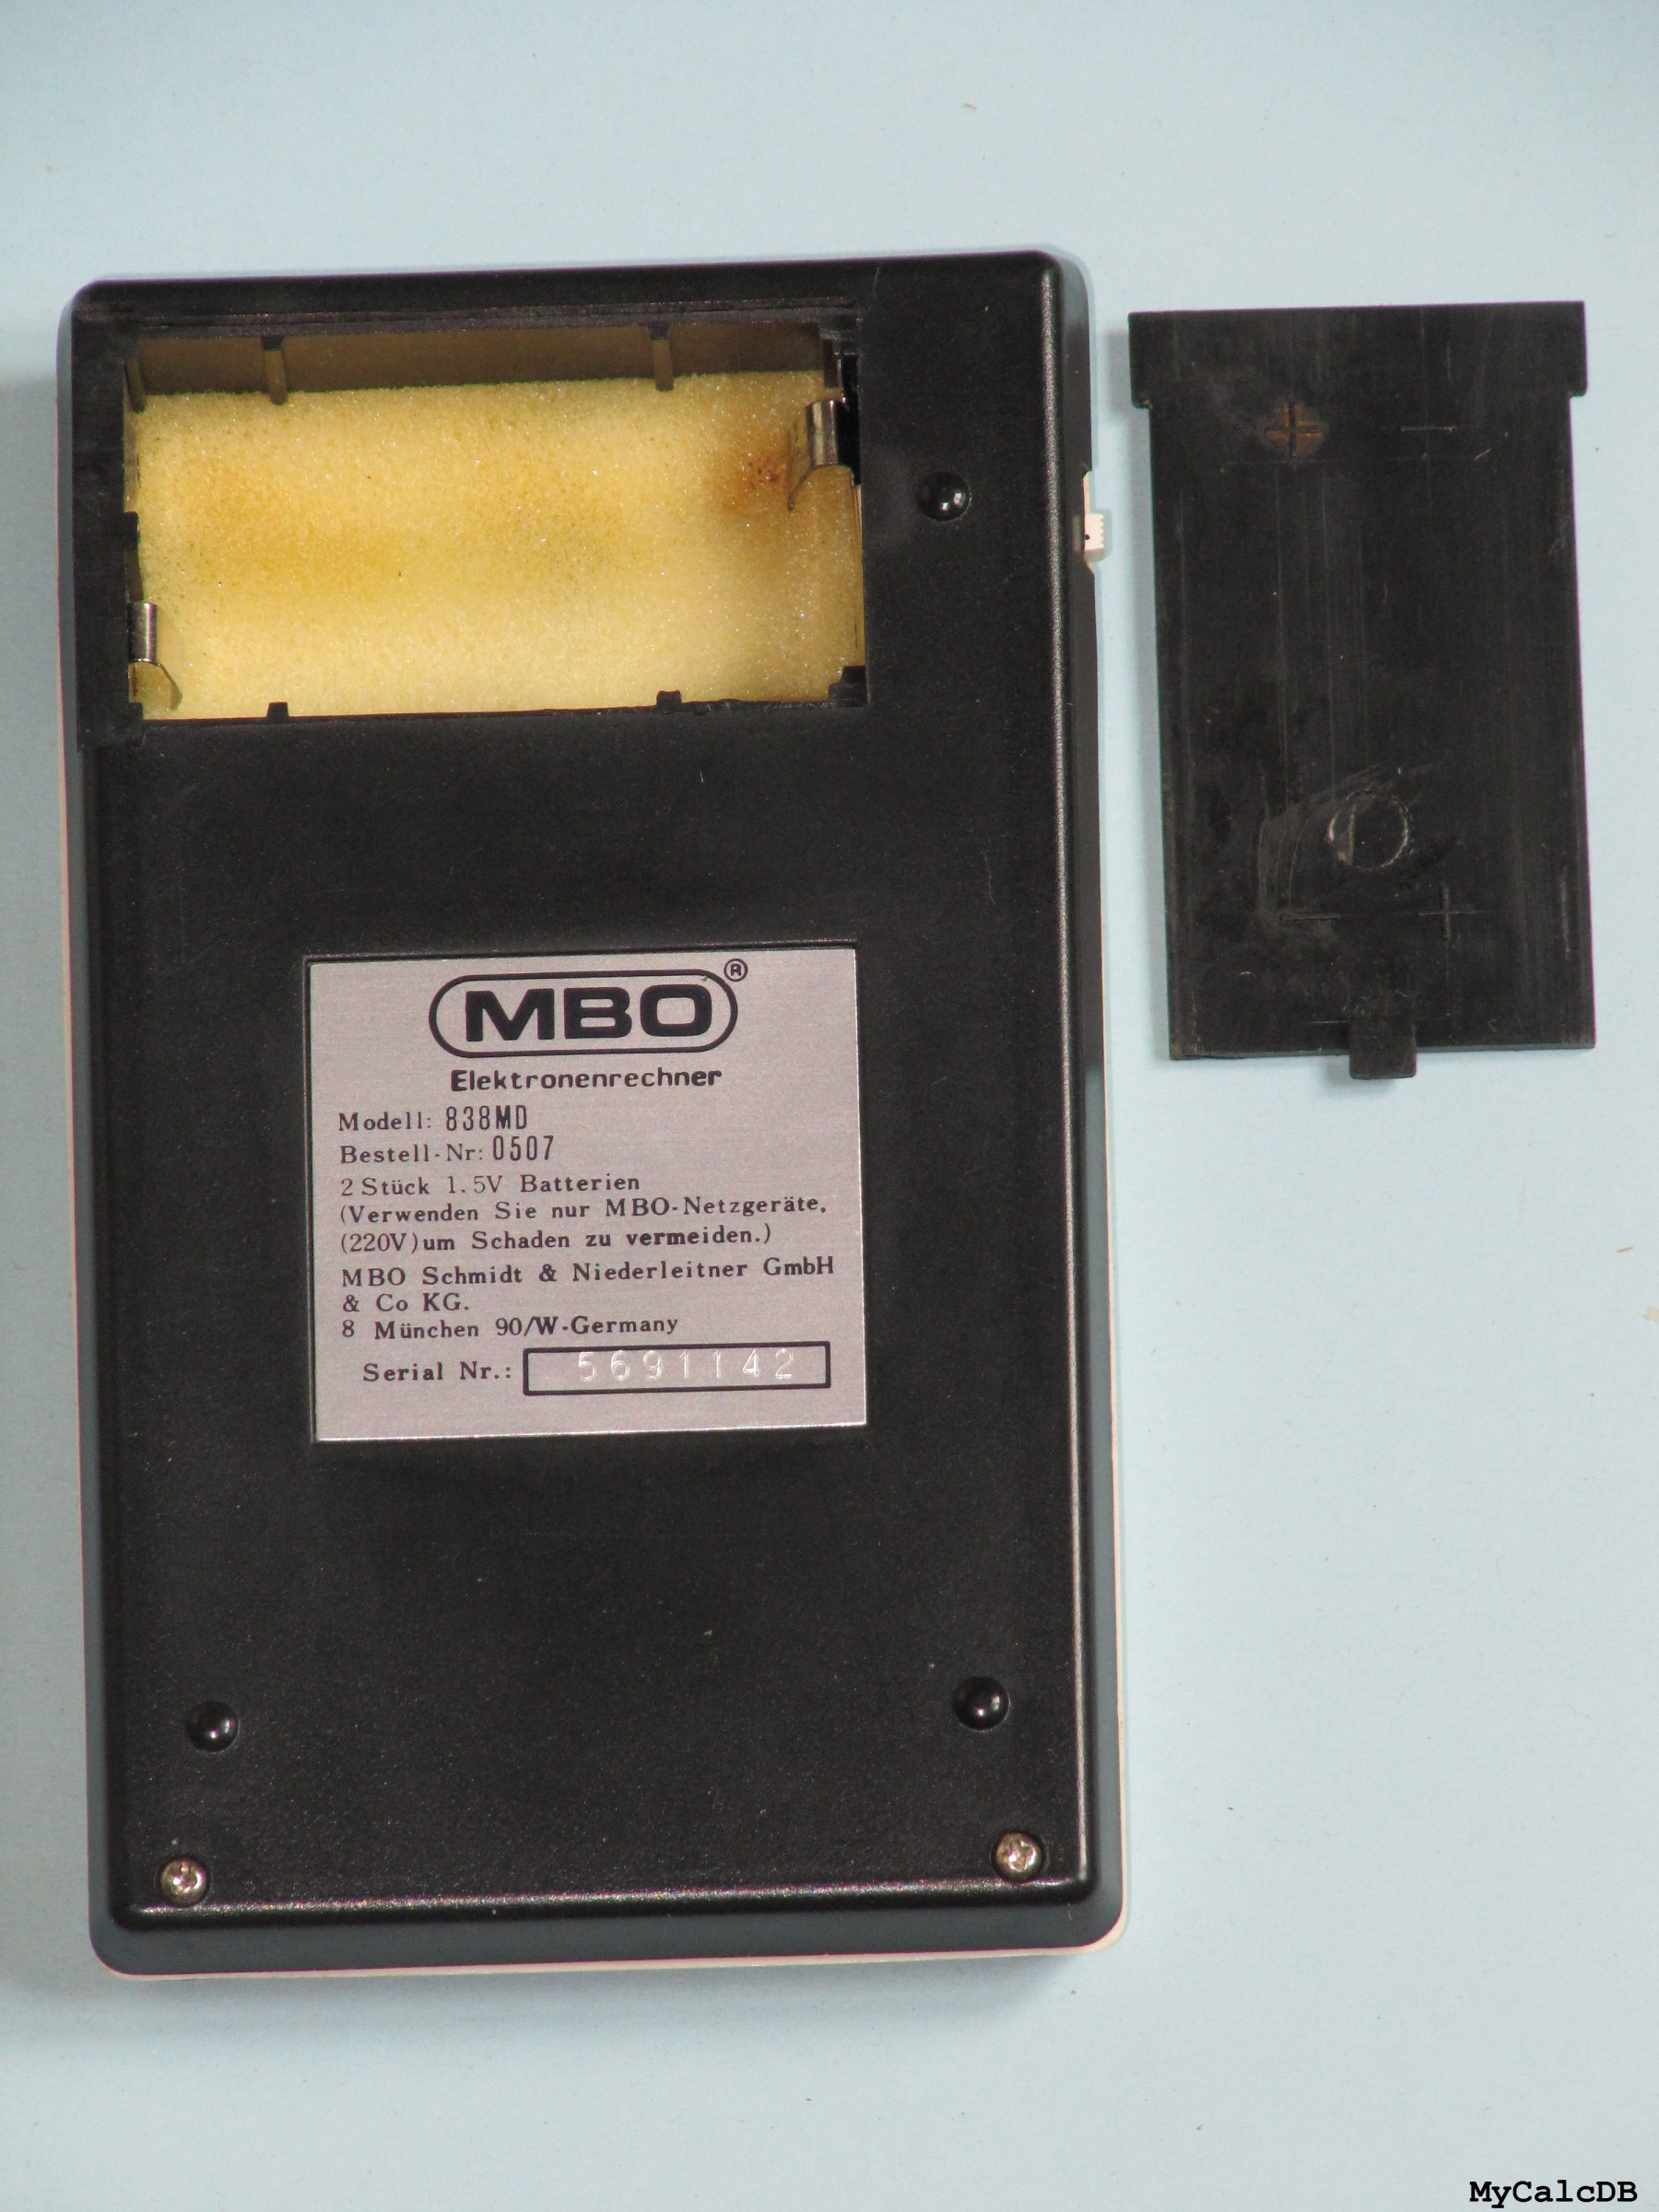 MBO 838MD